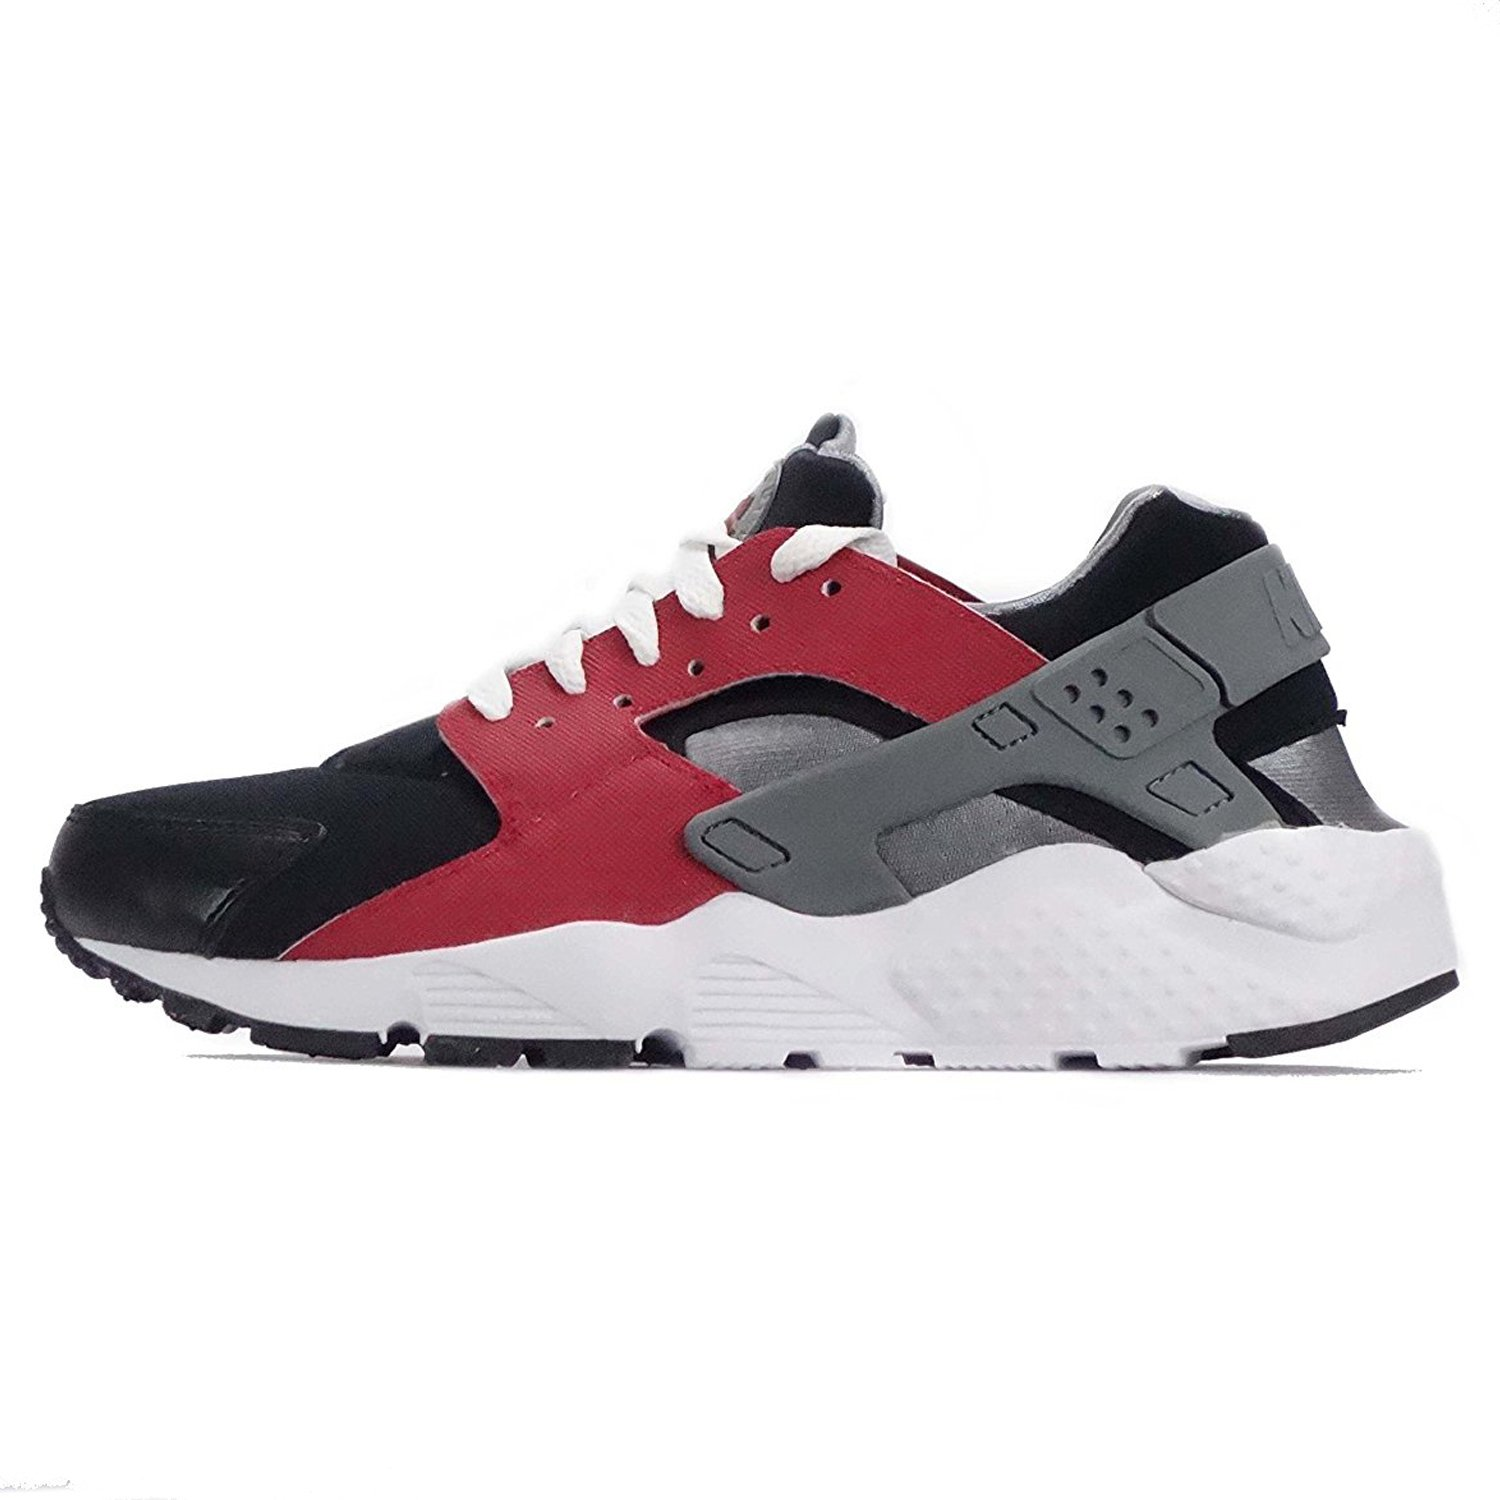 c7cbe3d5a868 Perfect for breaking your limits and reaching your goals NIKE Air Huarache  Run SE 5.5 (GS) sneakers B0163DAU0W 5.5 SE US Big Kid ...